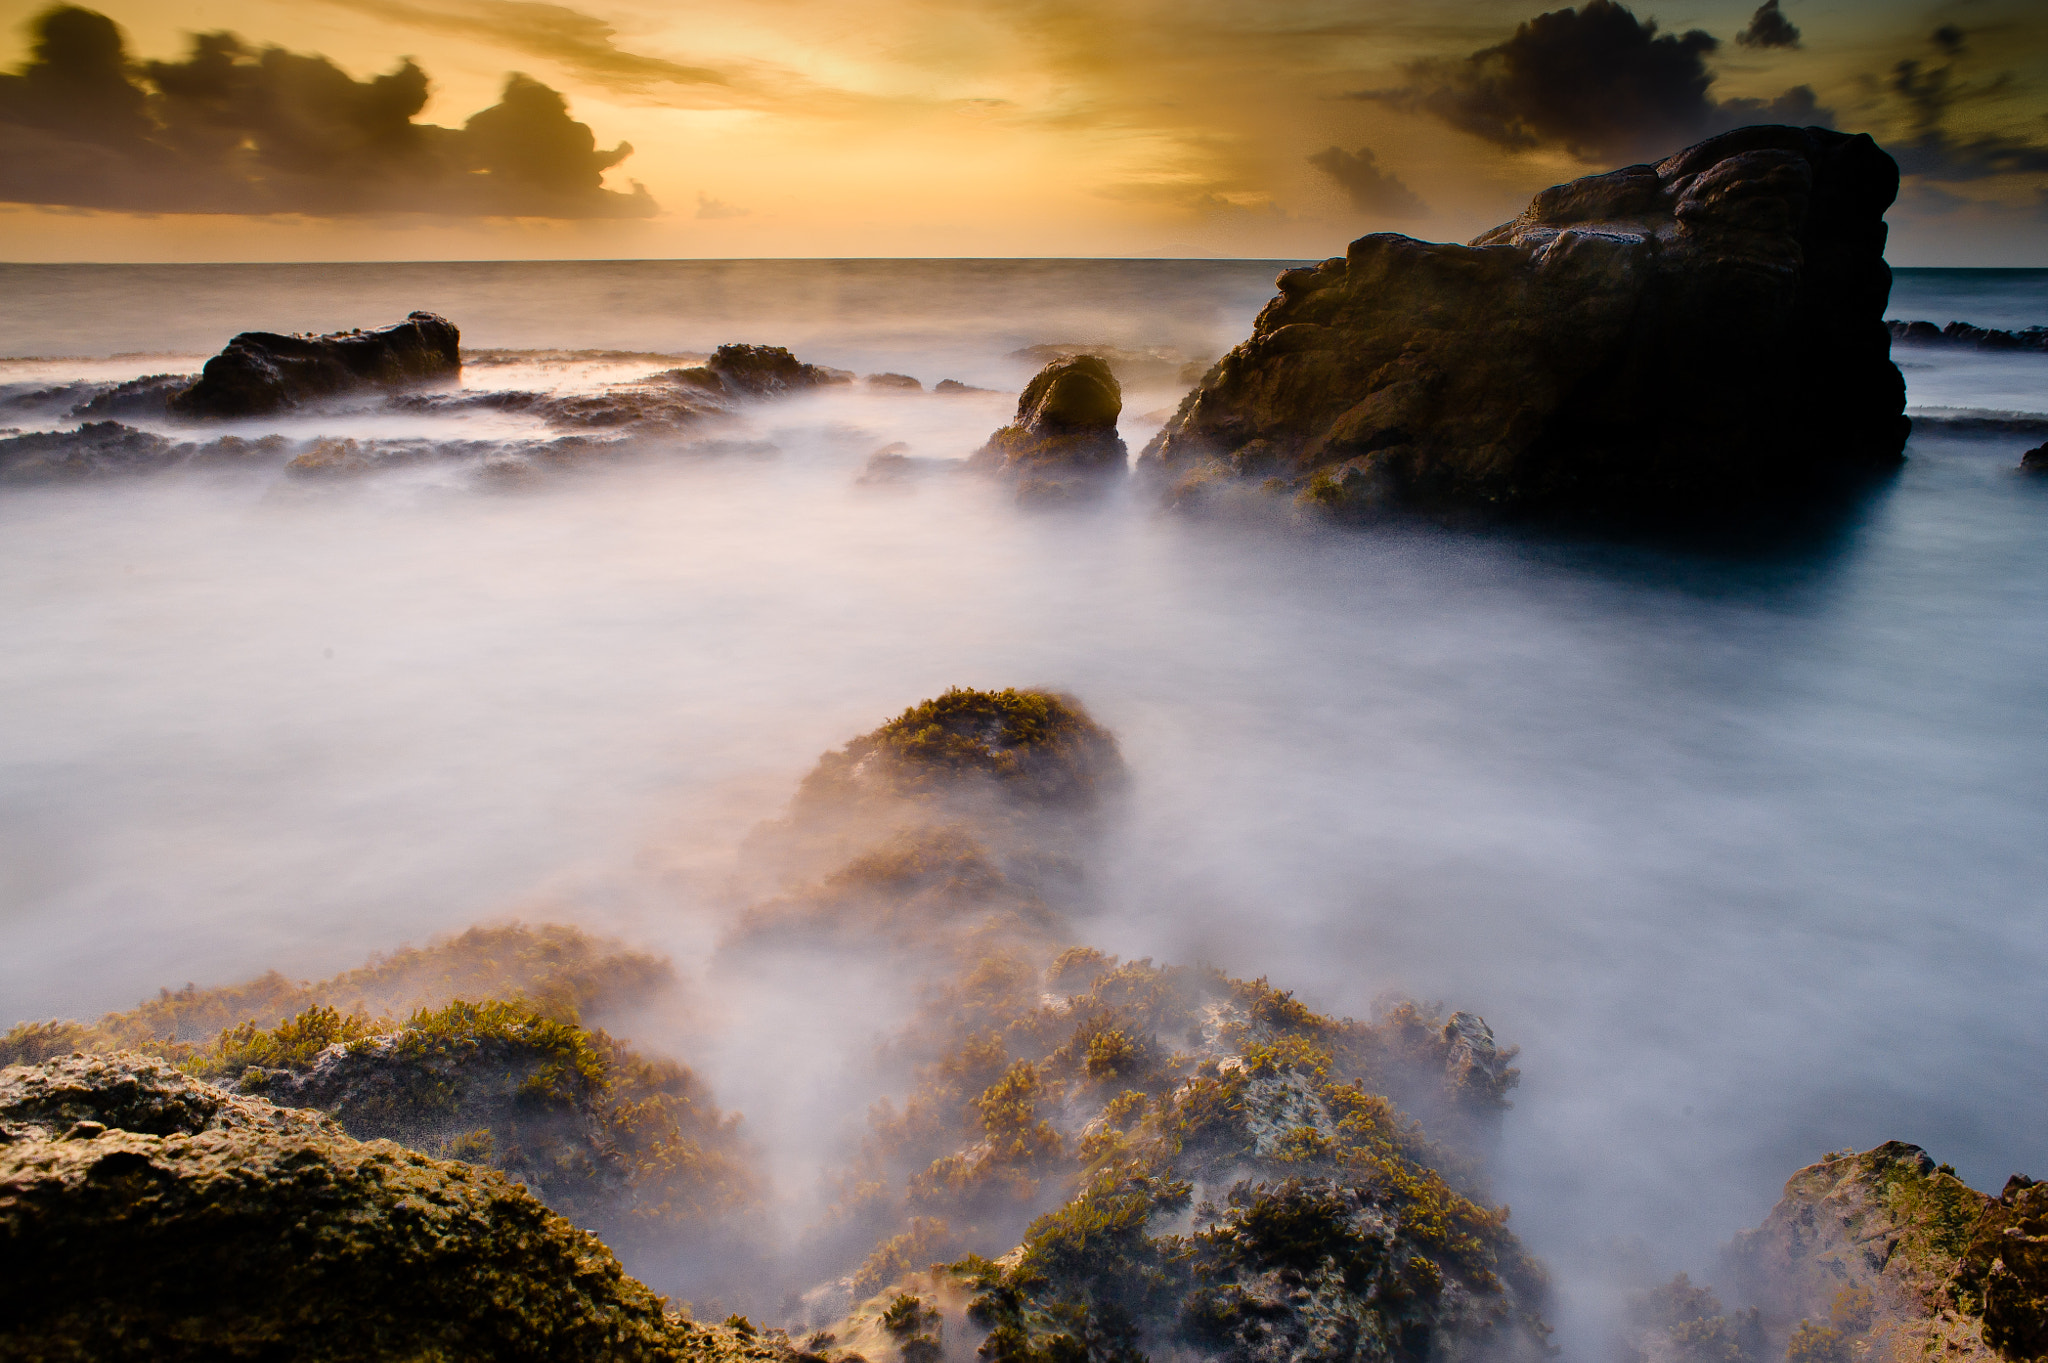 Photograph The Rising Sea by Carter Edwards on 500px